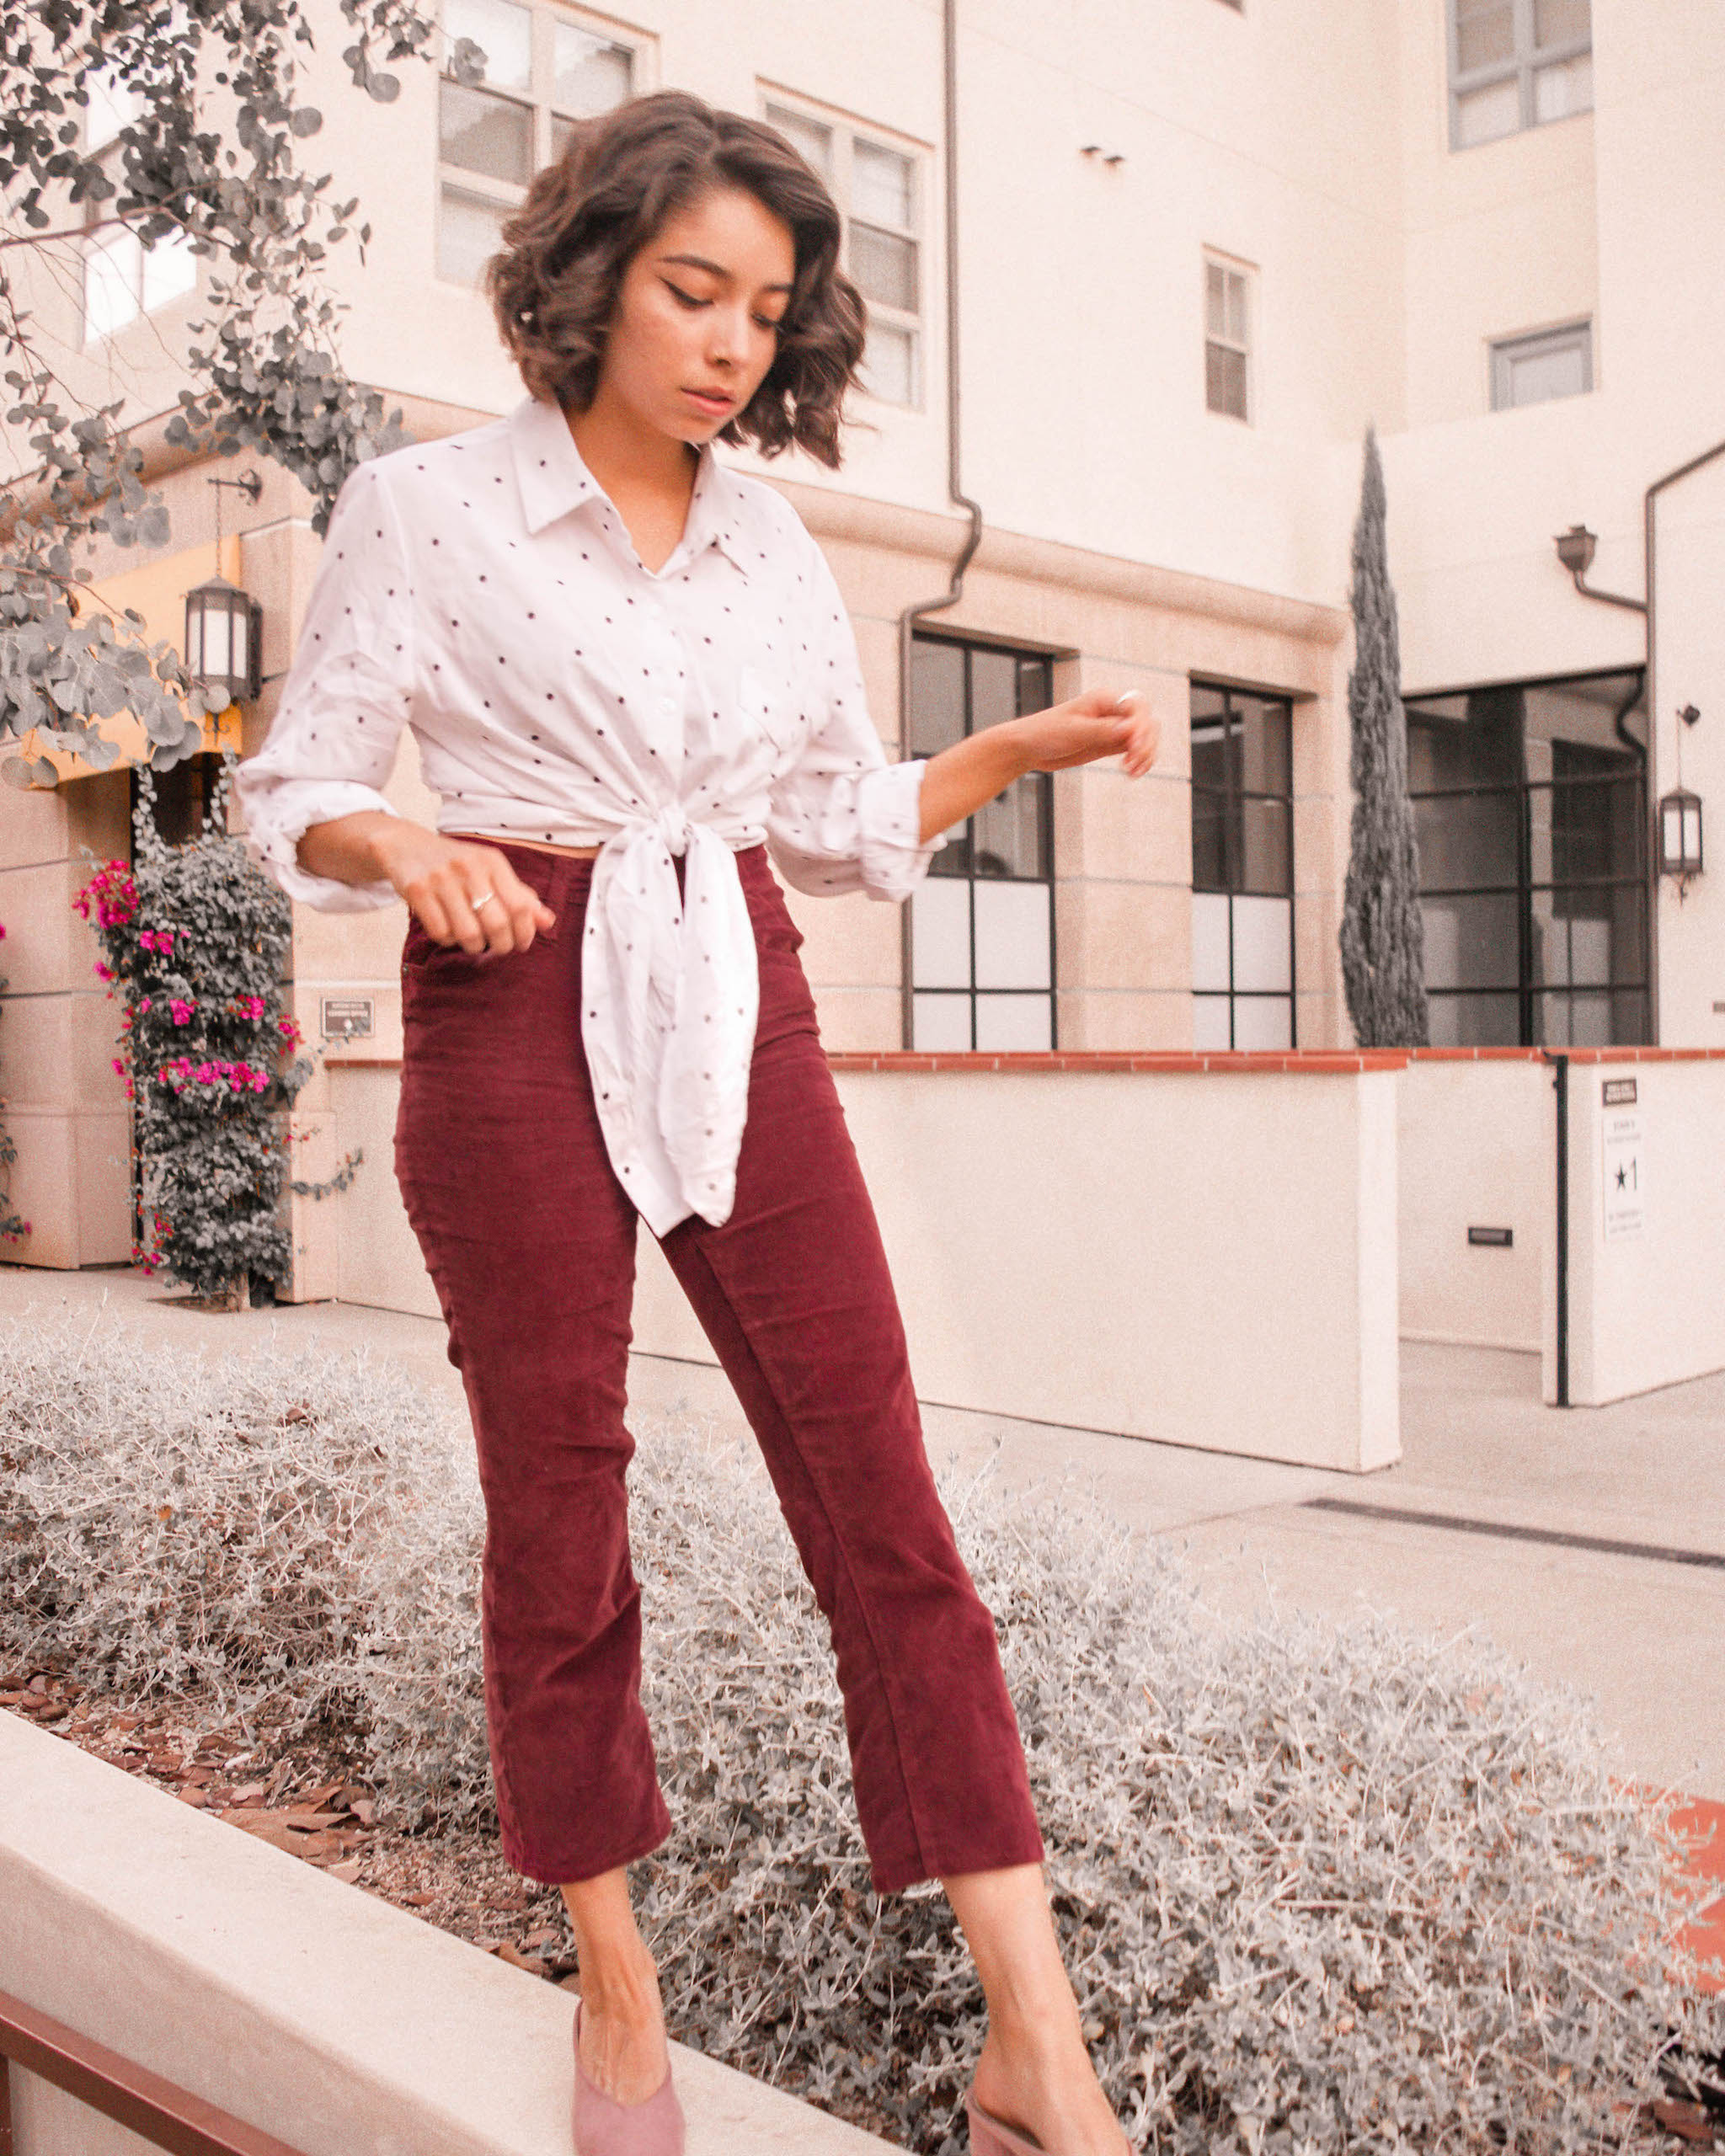 Thrifted outfit ideas // A Week Of Self-Expressive Outfits With Aja Duran From Aja With Love on The Good Trade